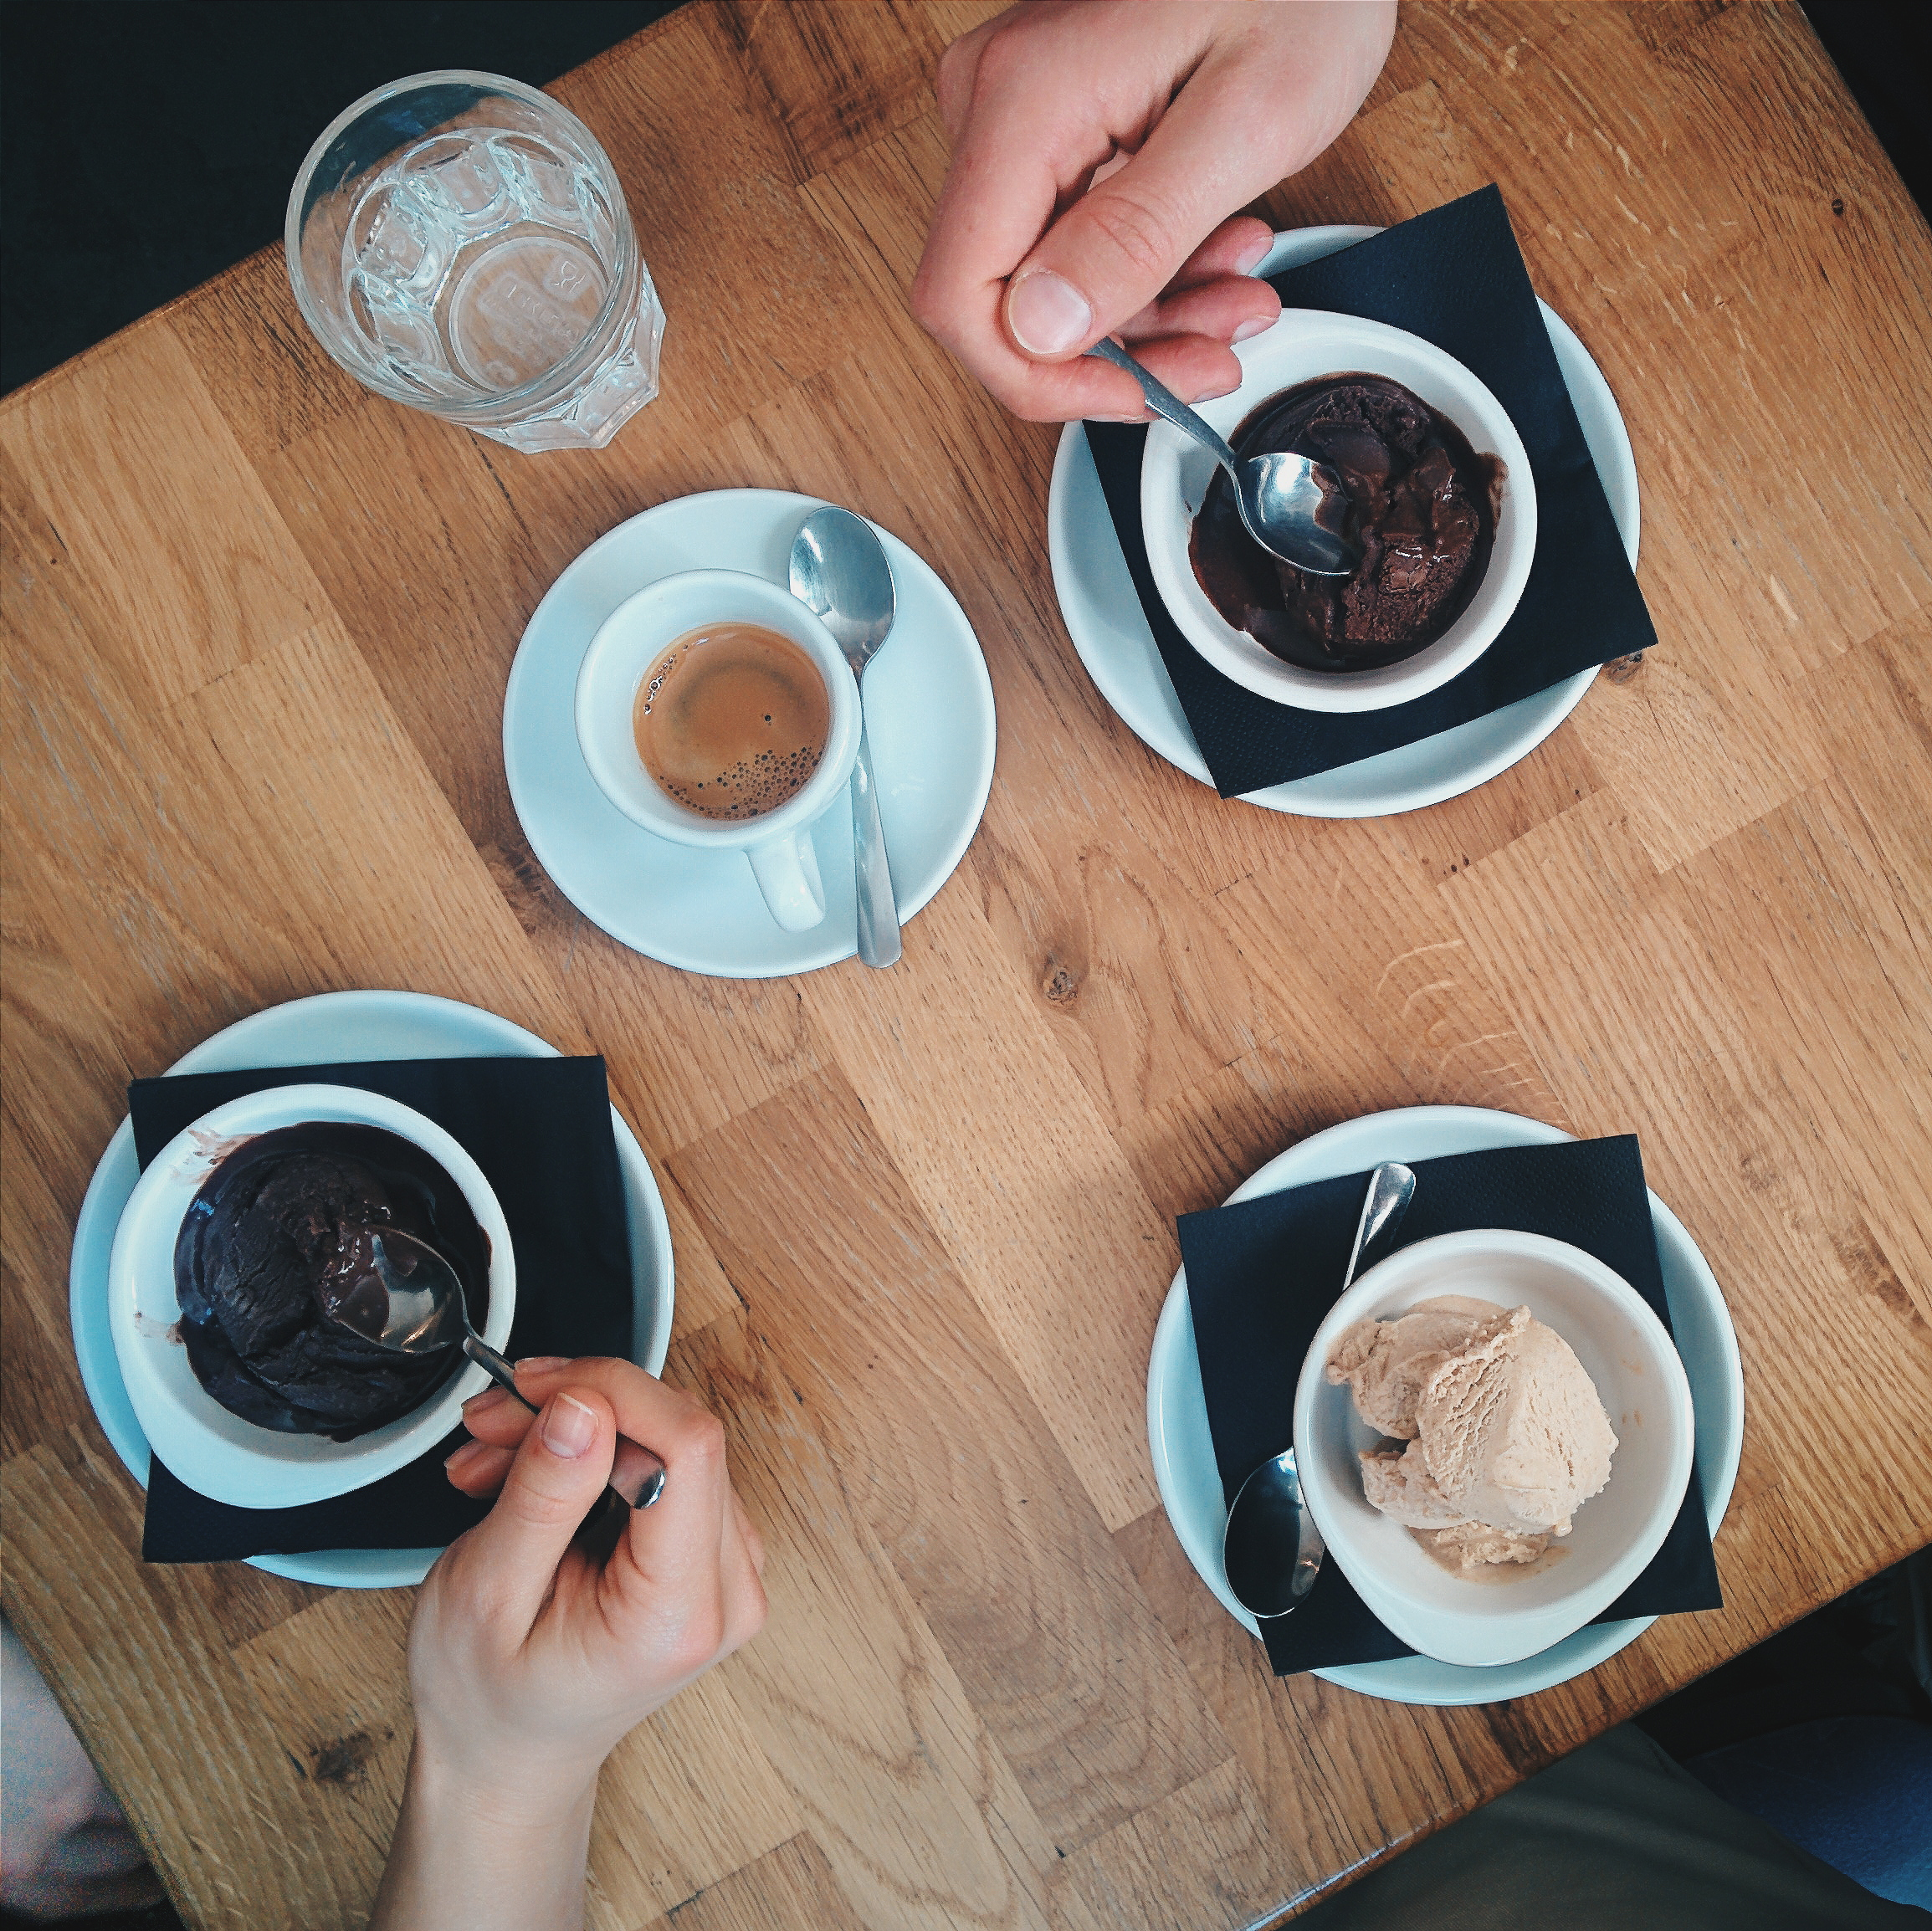 foodiesfeed.com_more-ice-cream-than-coffee.jpg